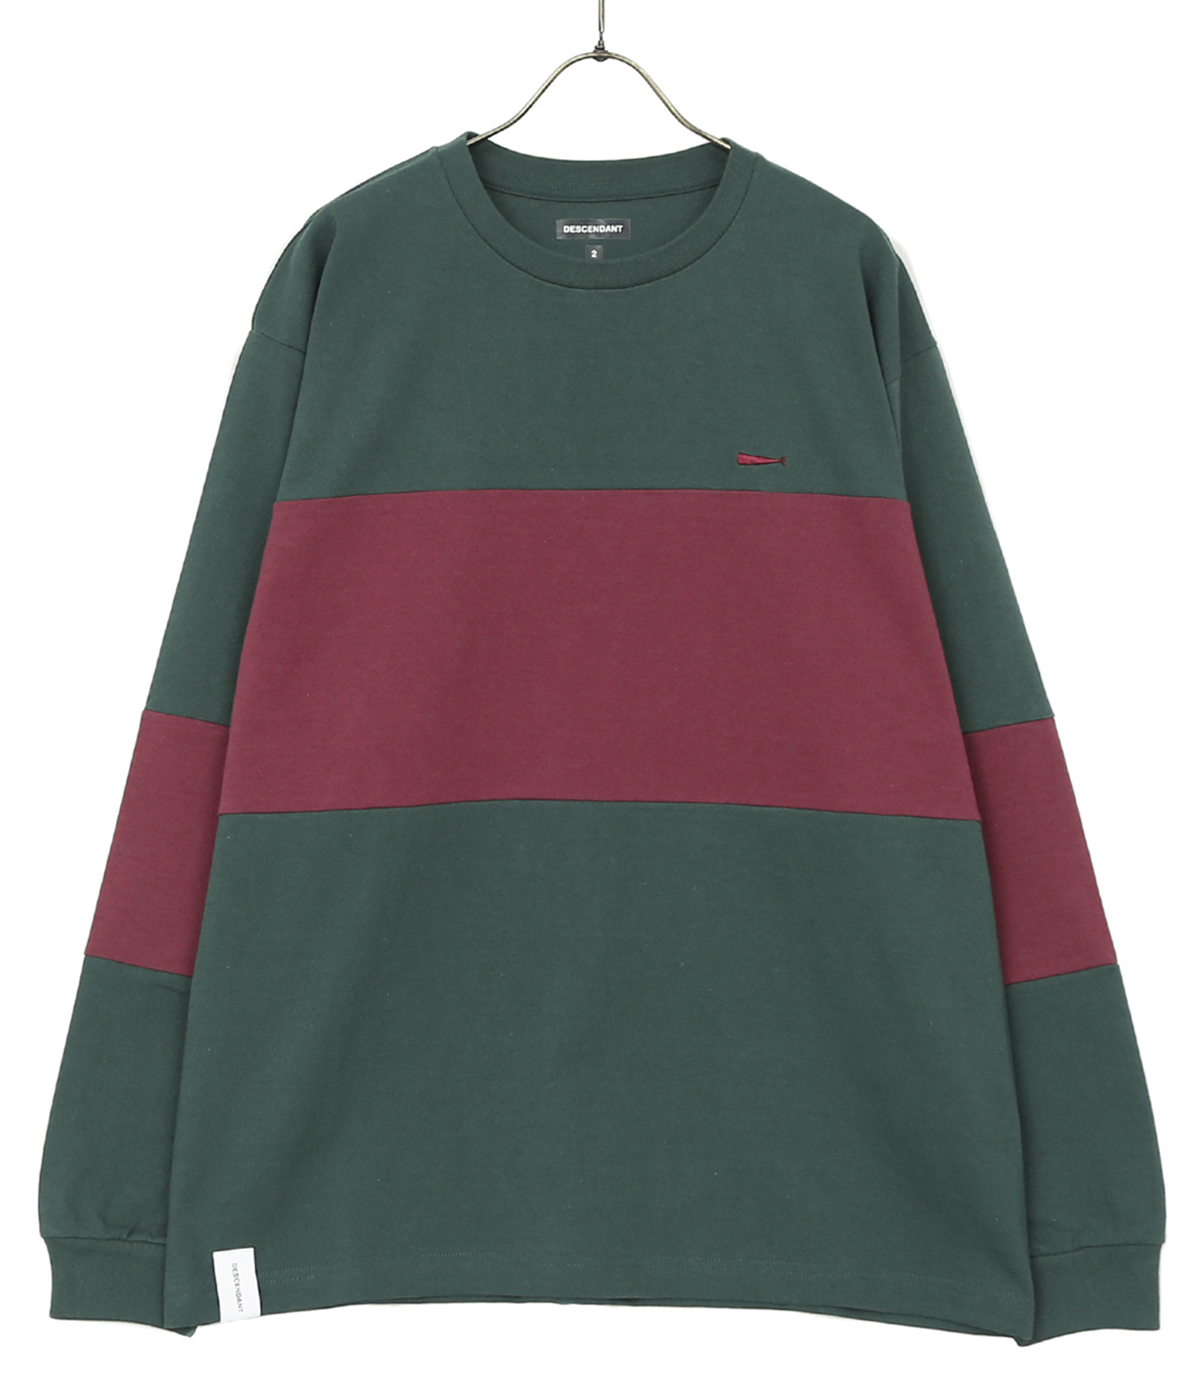 CURRENT CREW NECK LS